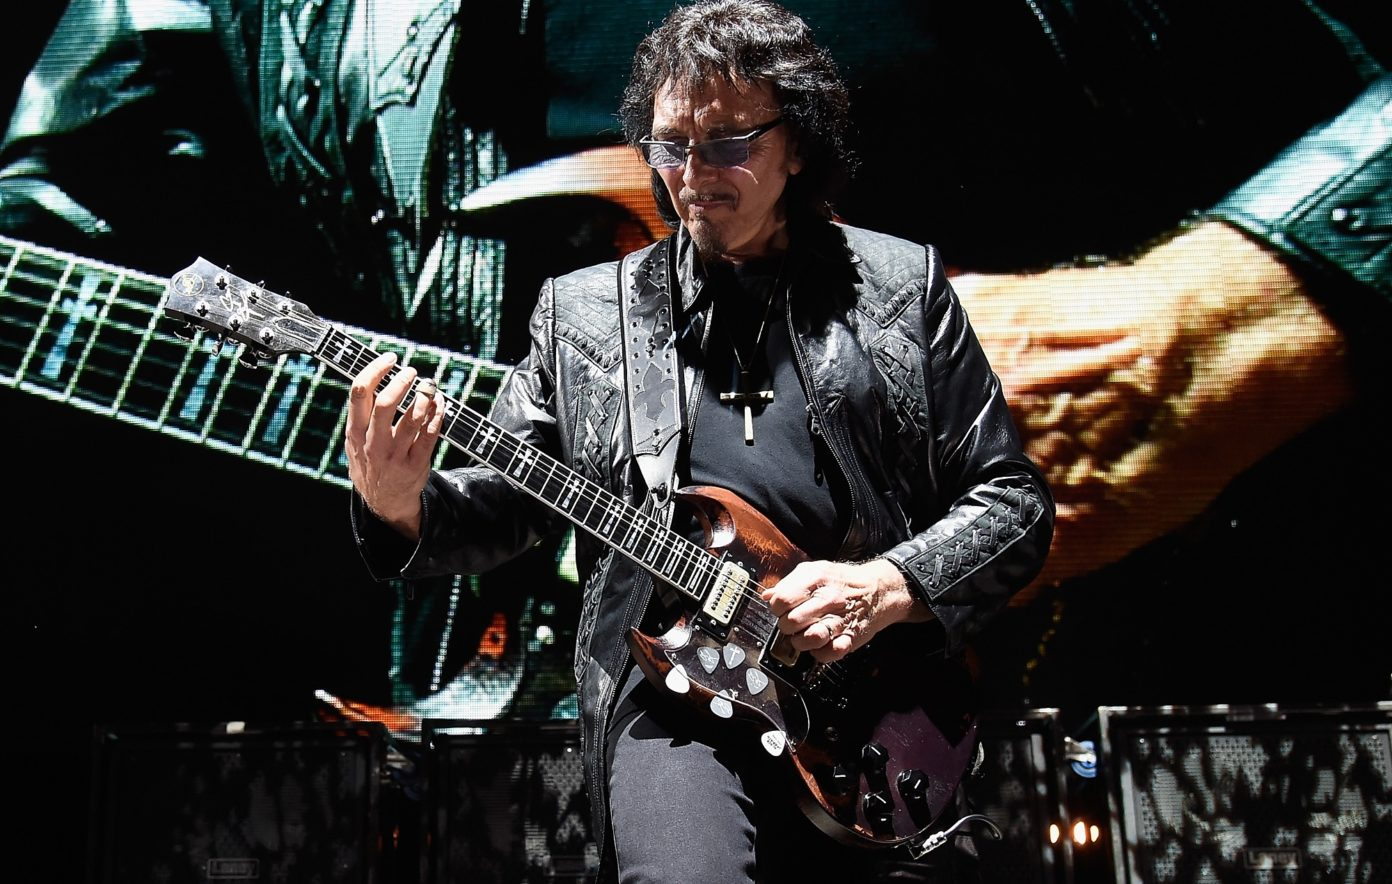 Tony Iommi | 21 Of The Most Badass, Best Guitar Players Throughout History